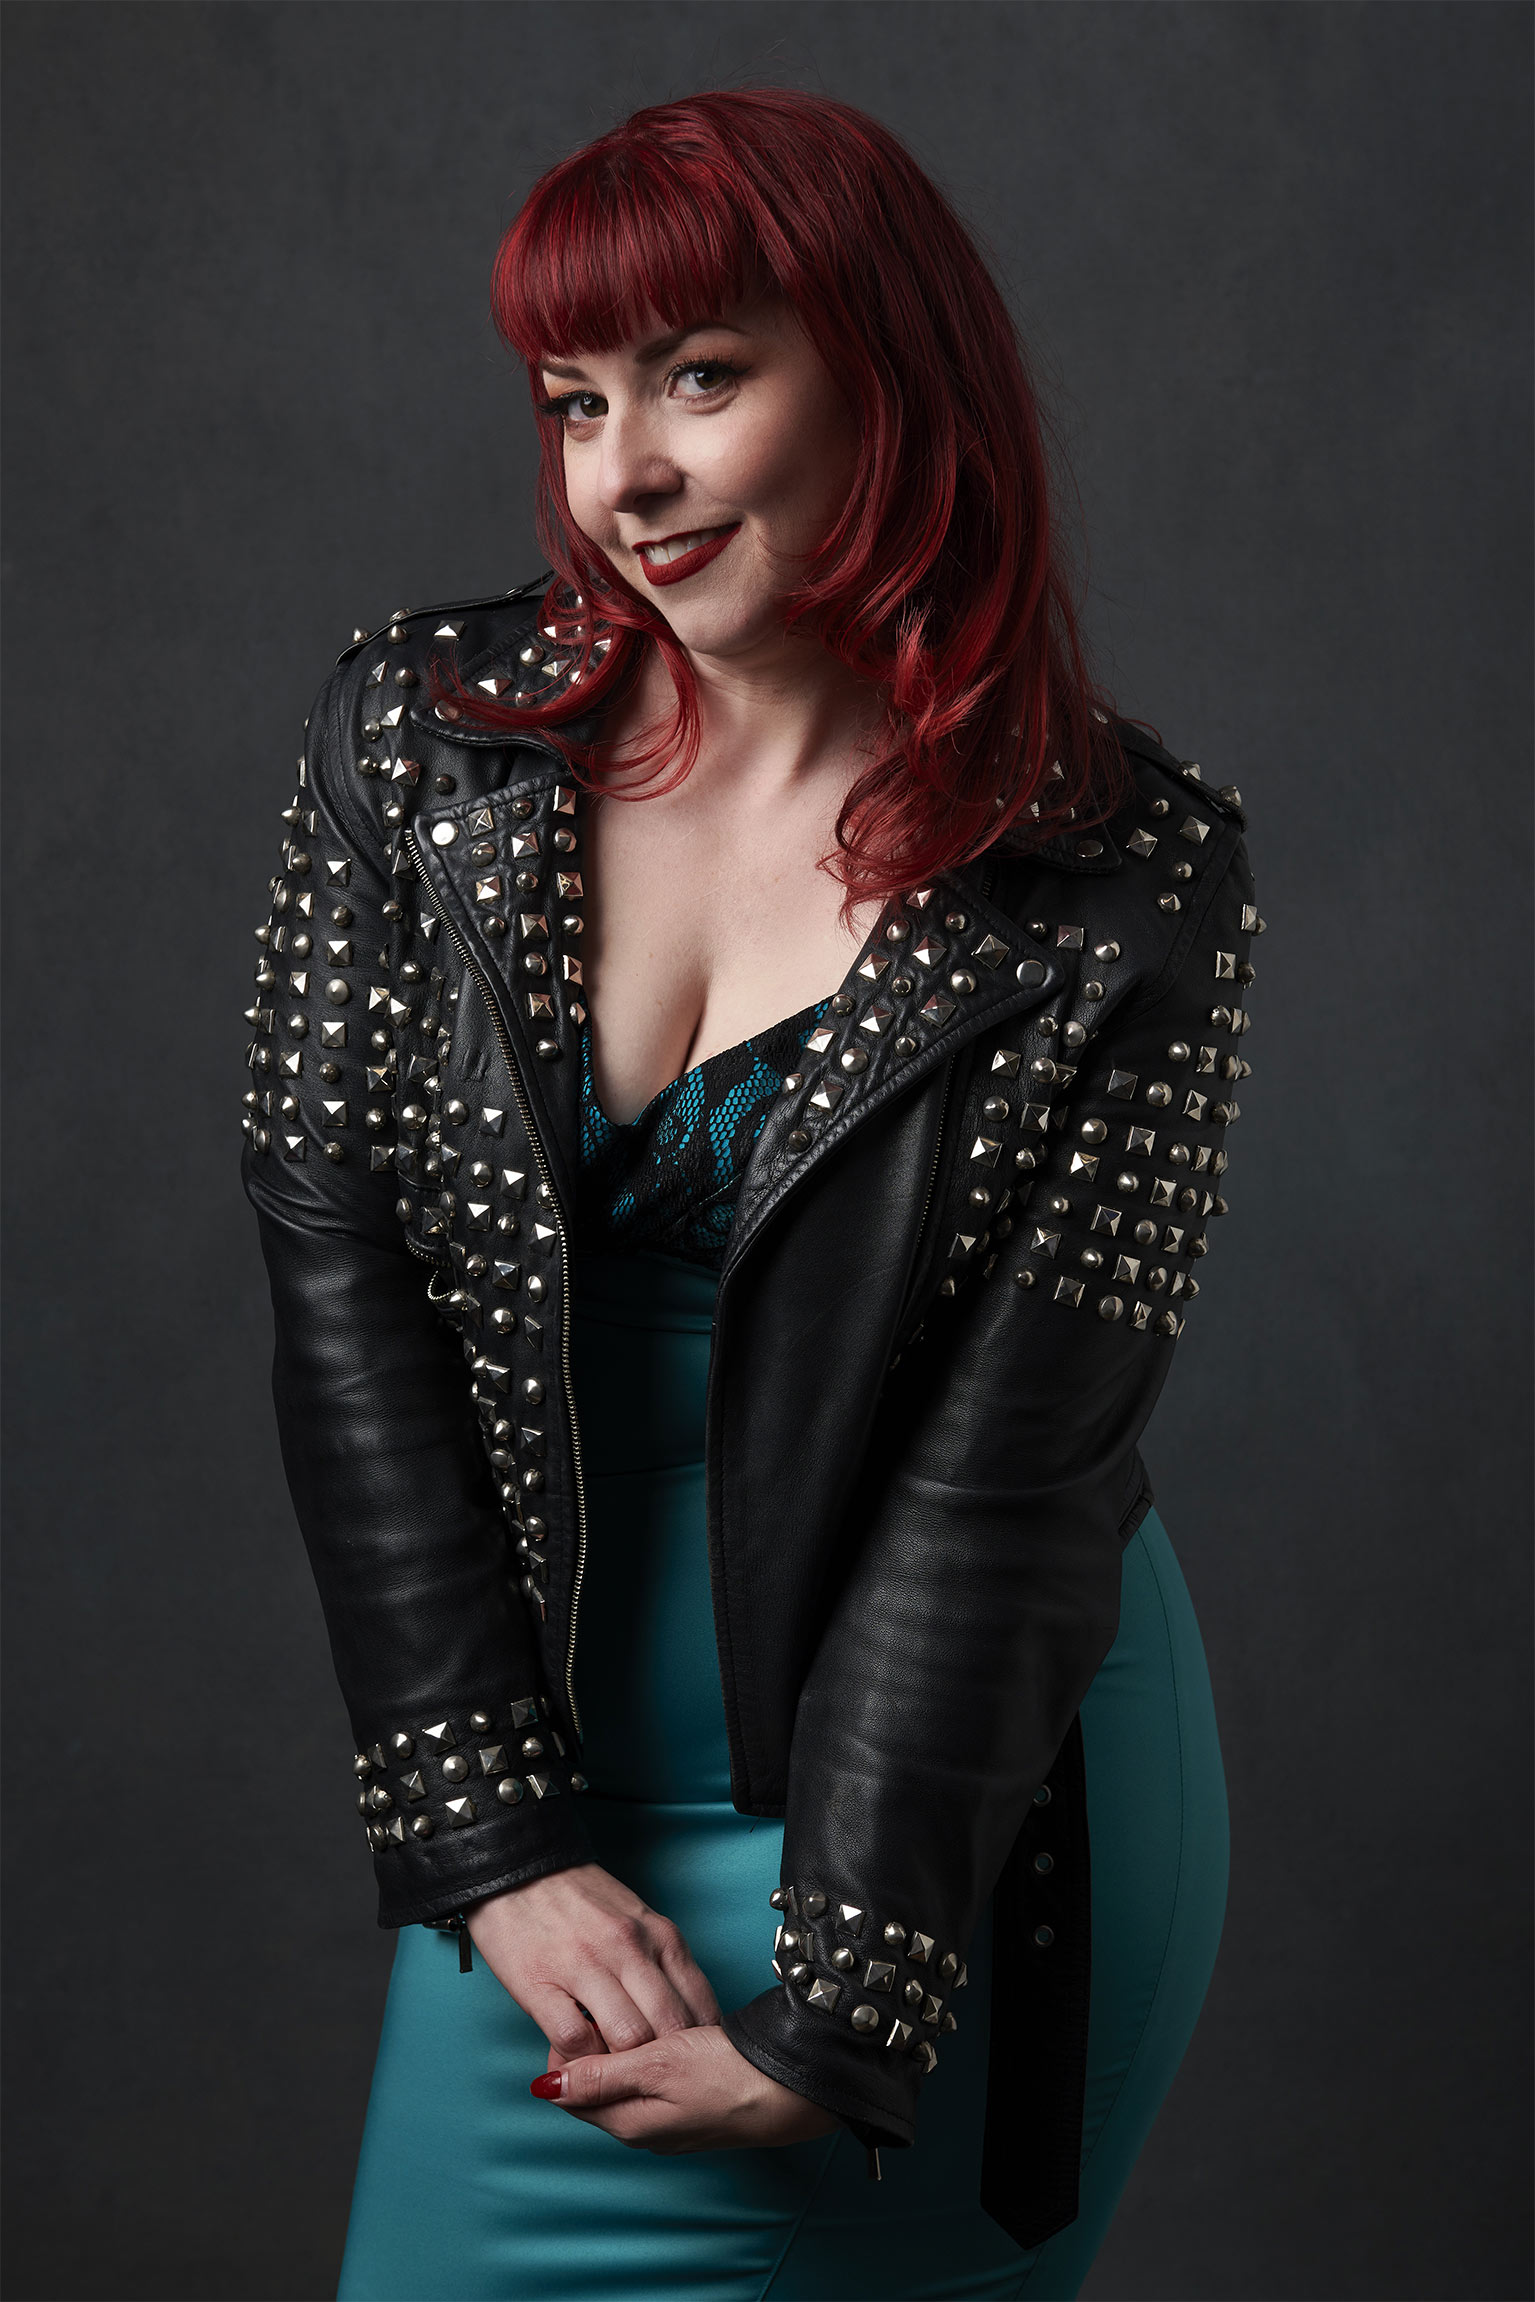 Joanna04530-redhead-woman-in-leather-jacket.jpg